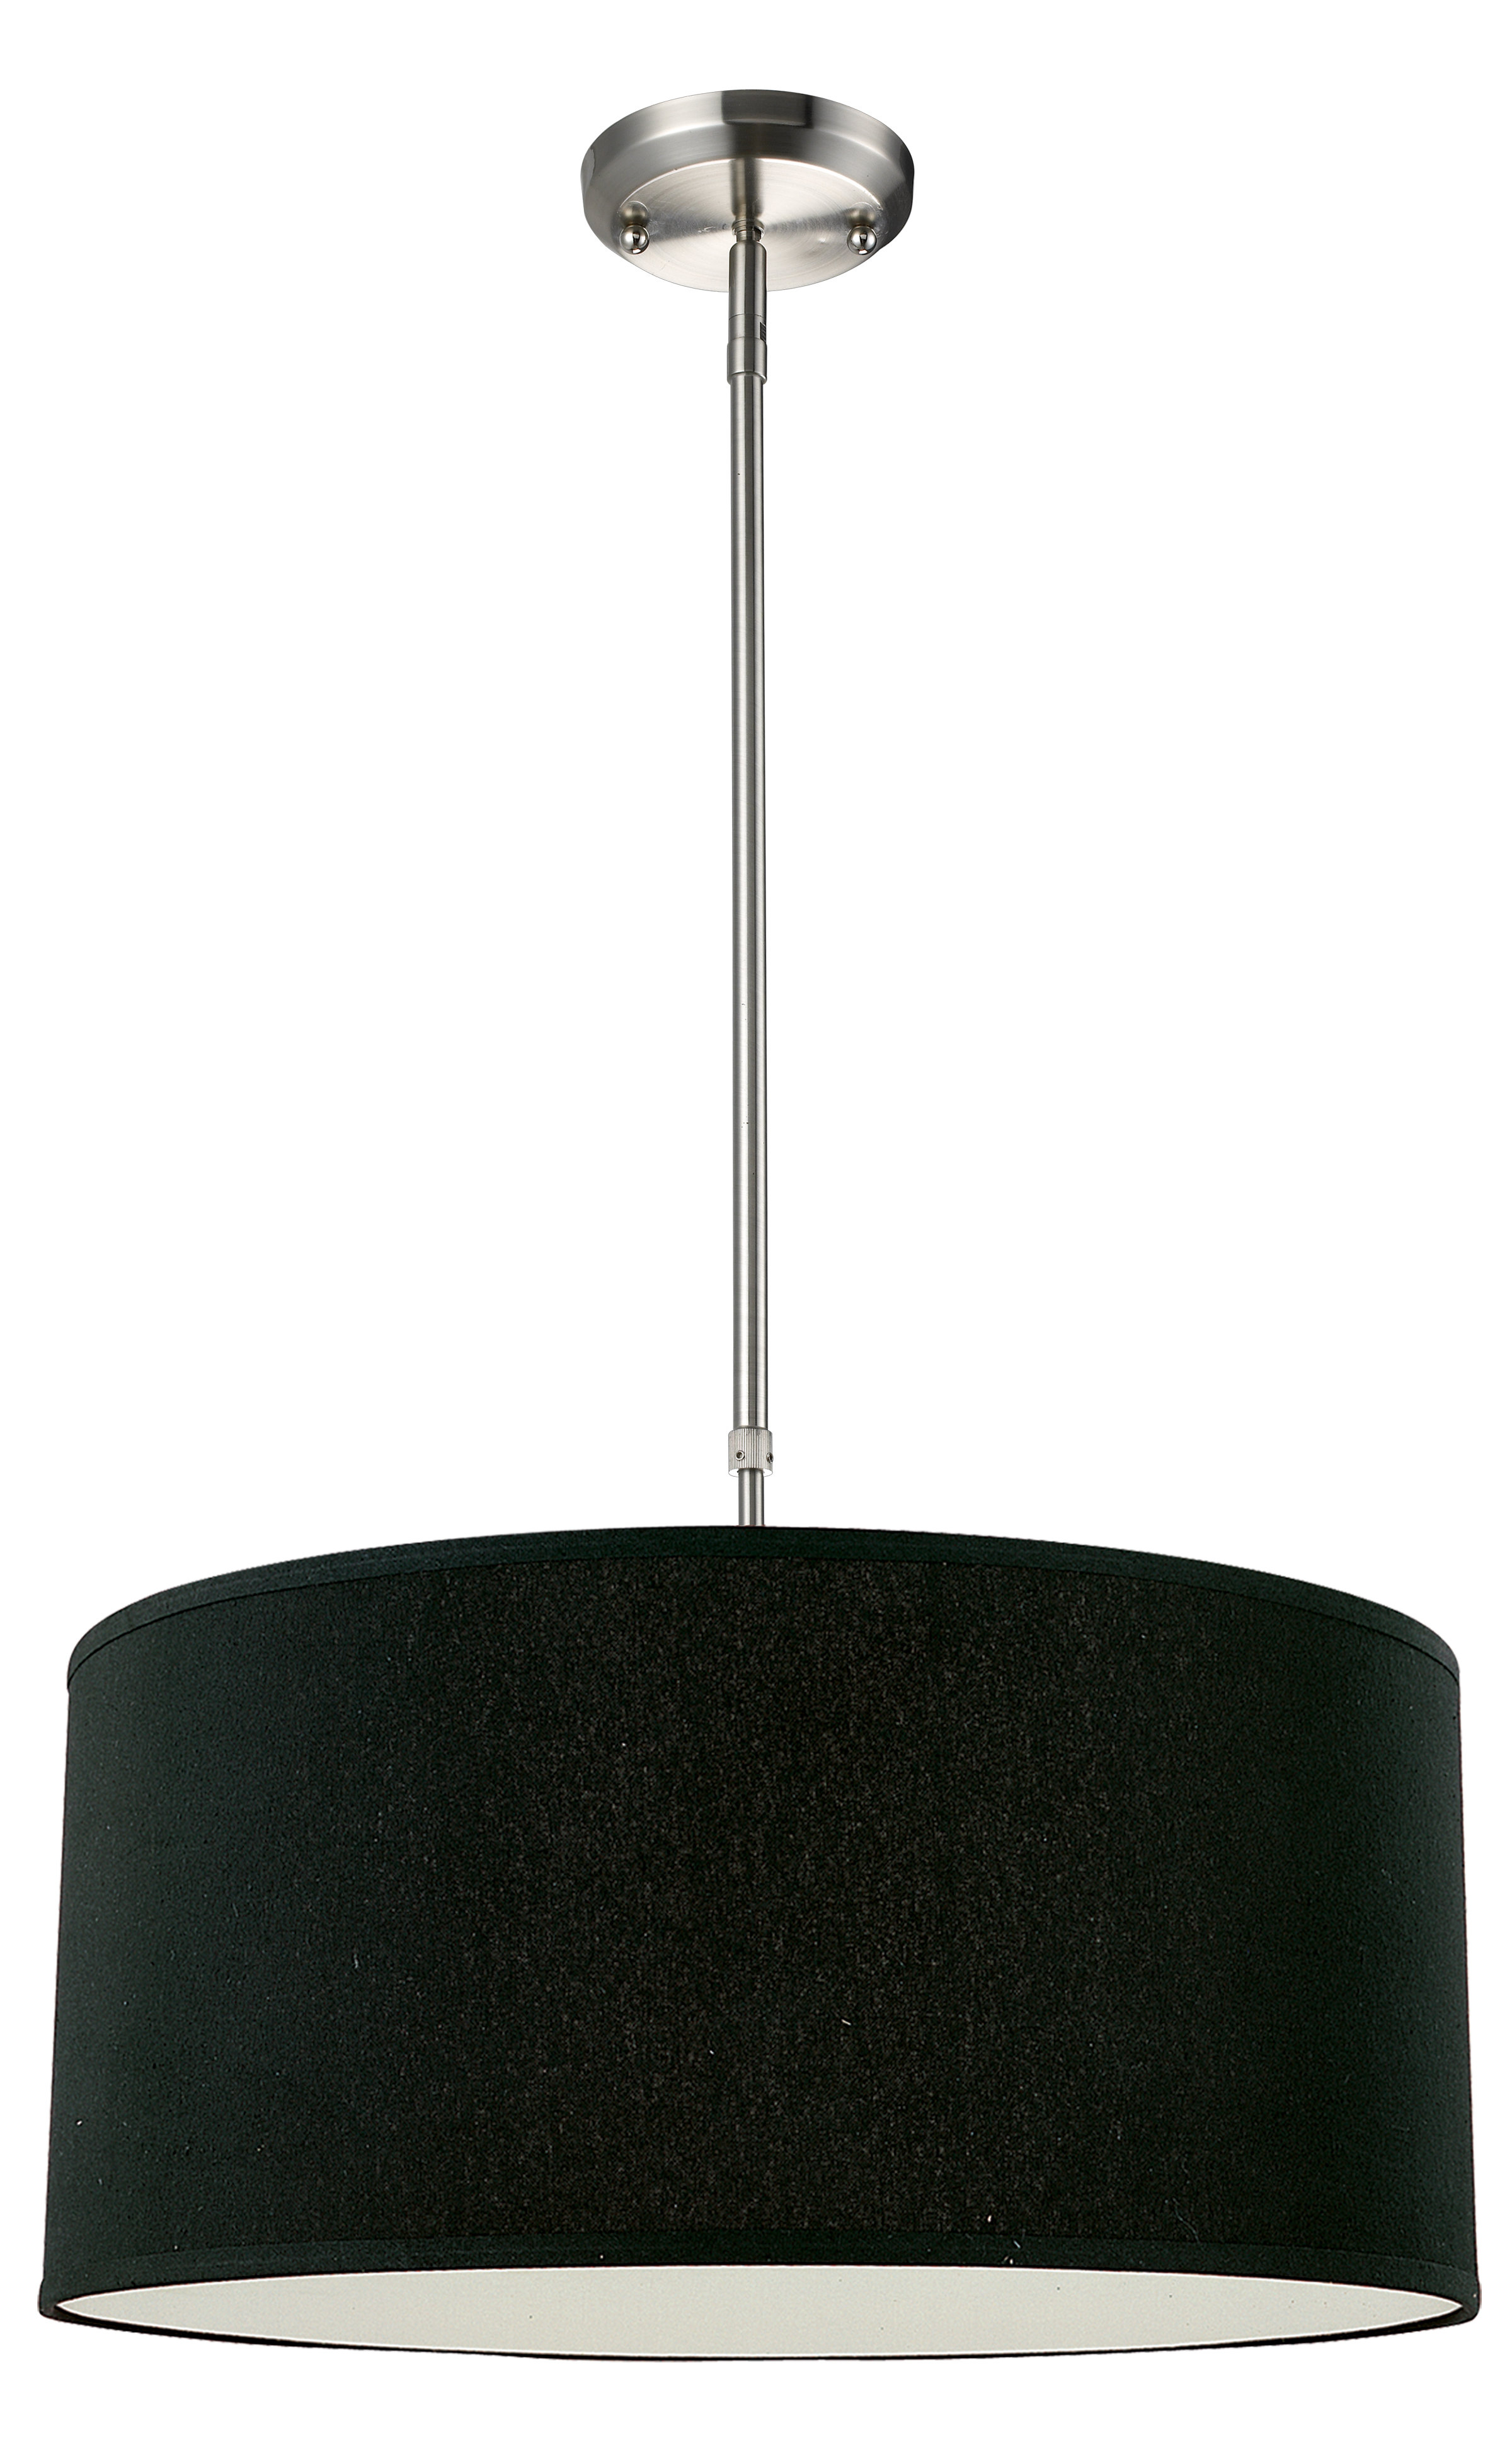 Kasey 3 Light Drum Pendant With Regard To Newest Kasey 3 Light Single Drum Pendants (View 5 of 20)